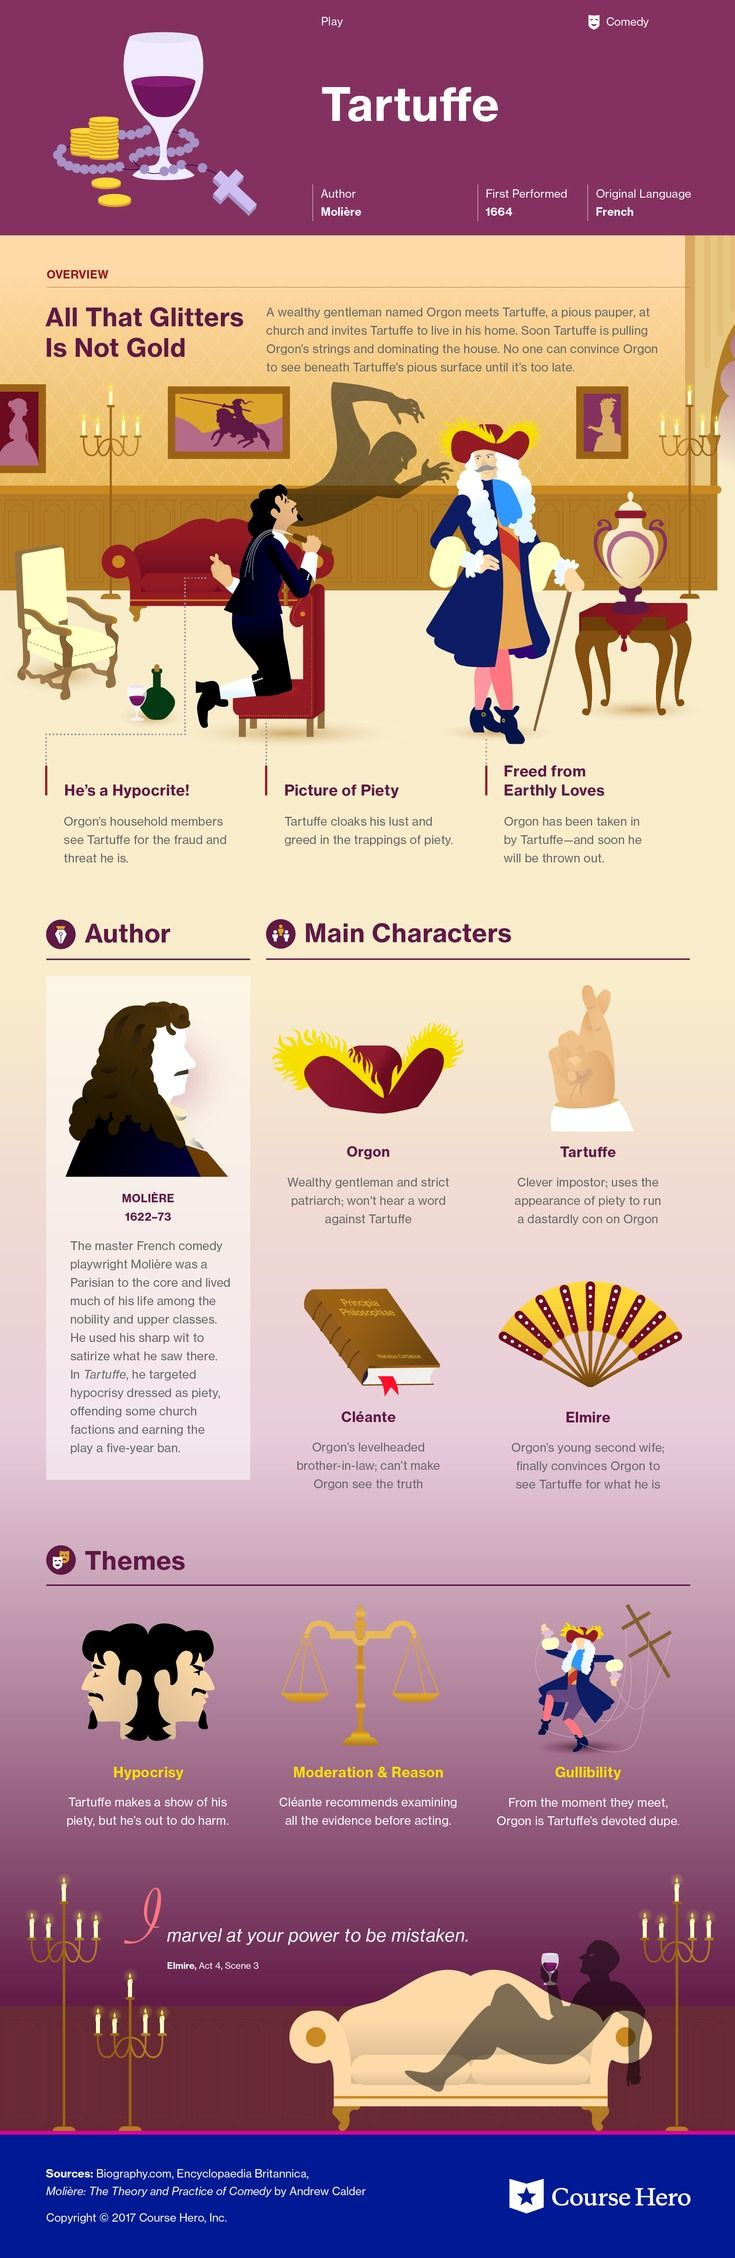 This @CourseHero infographic on Tartuffe is both visually stunning and informative!